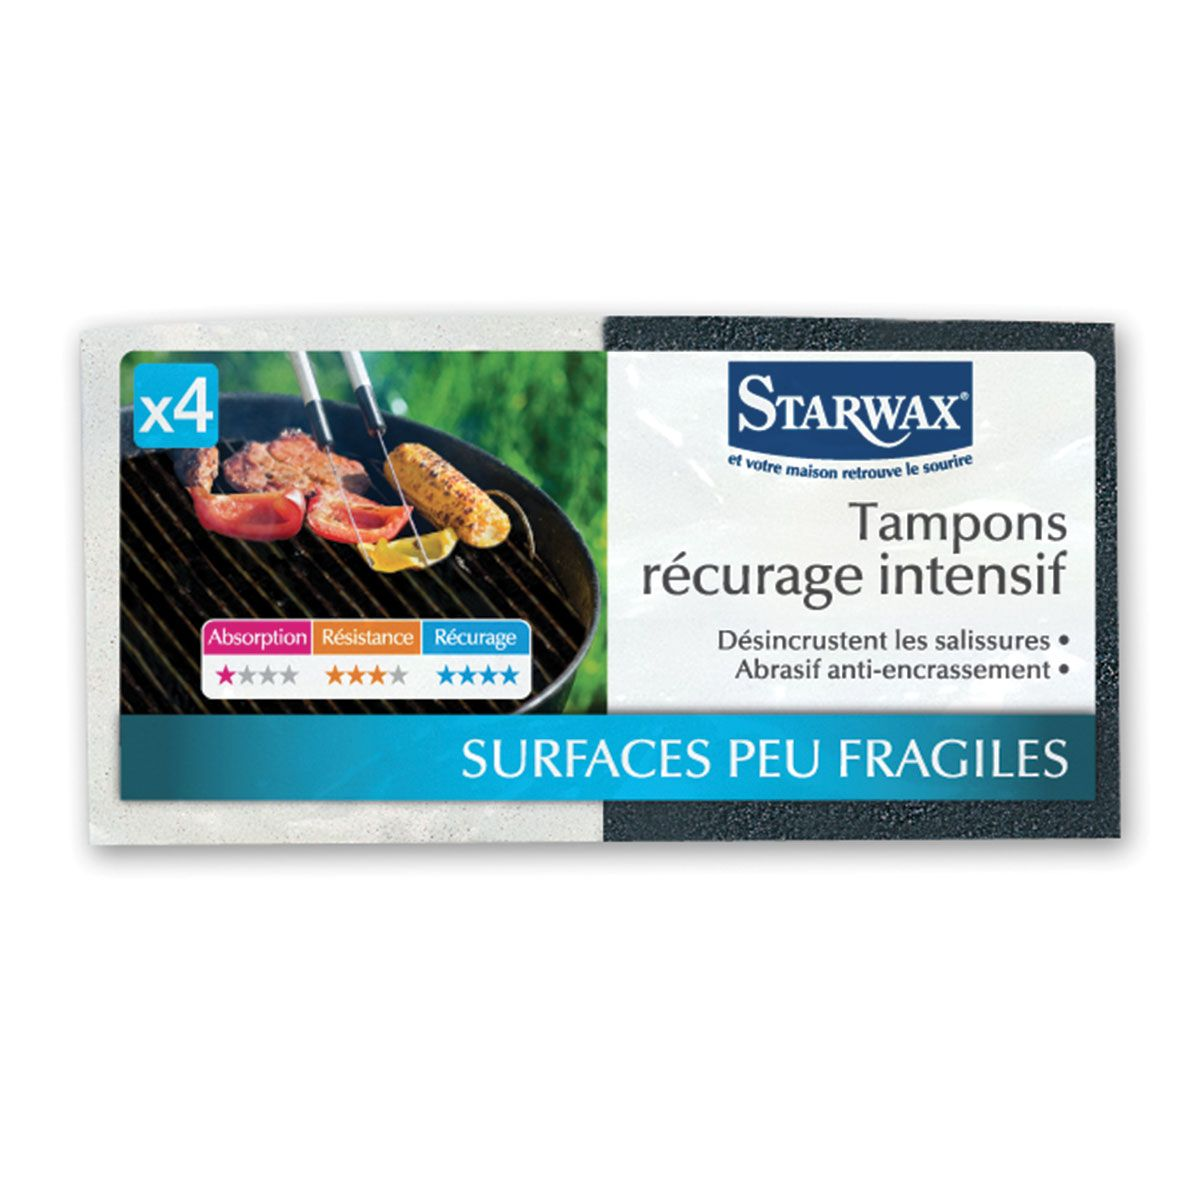 Tampons récurage intensif - Starwax